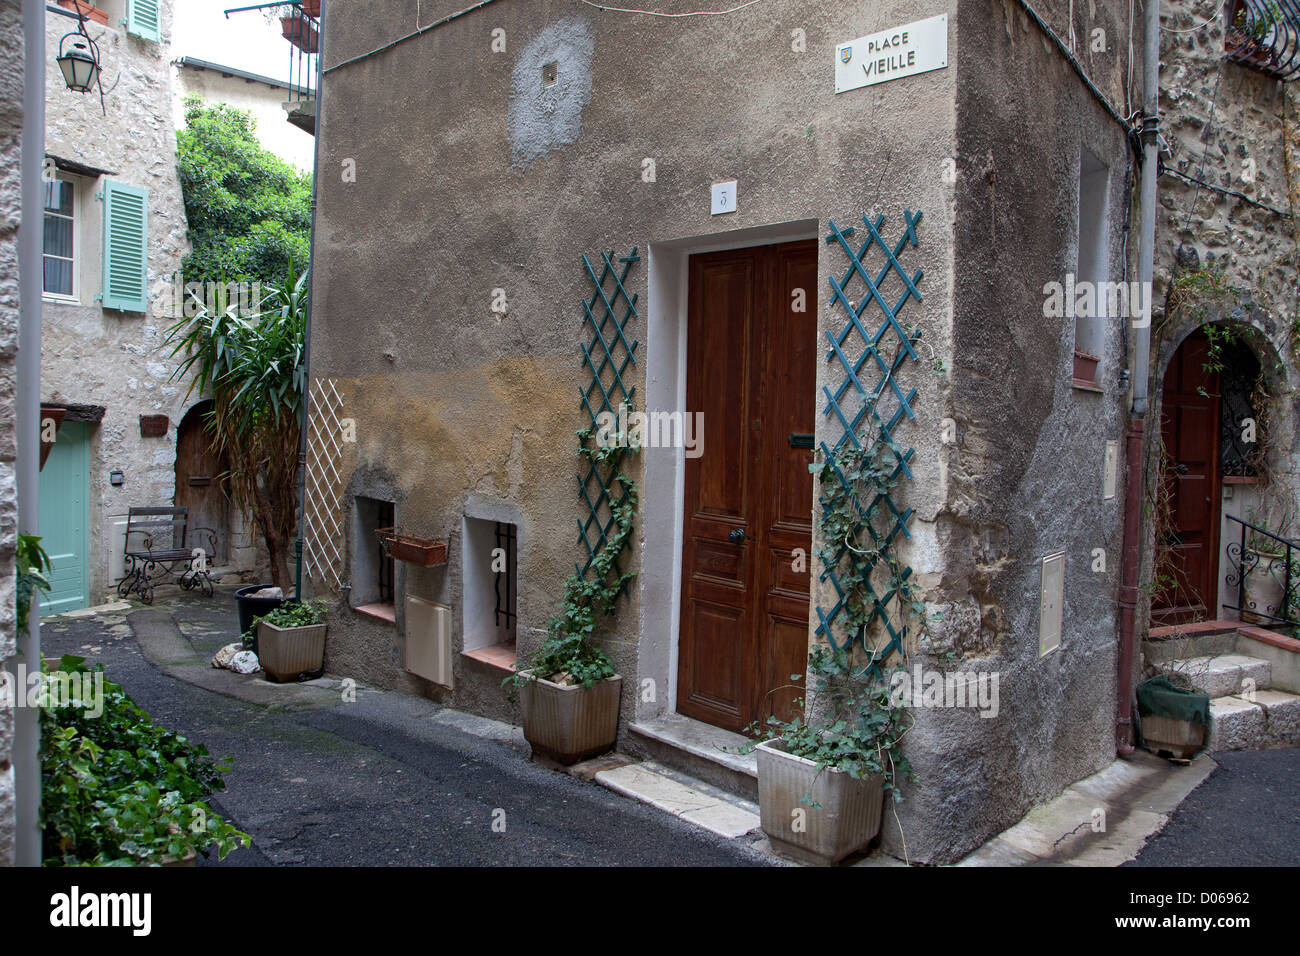 PLACE VIELLE THE SMALLEST SQUARE IN FRANCE VENCE ALPES-MARITIMES (06) FRANCE - Stock Image